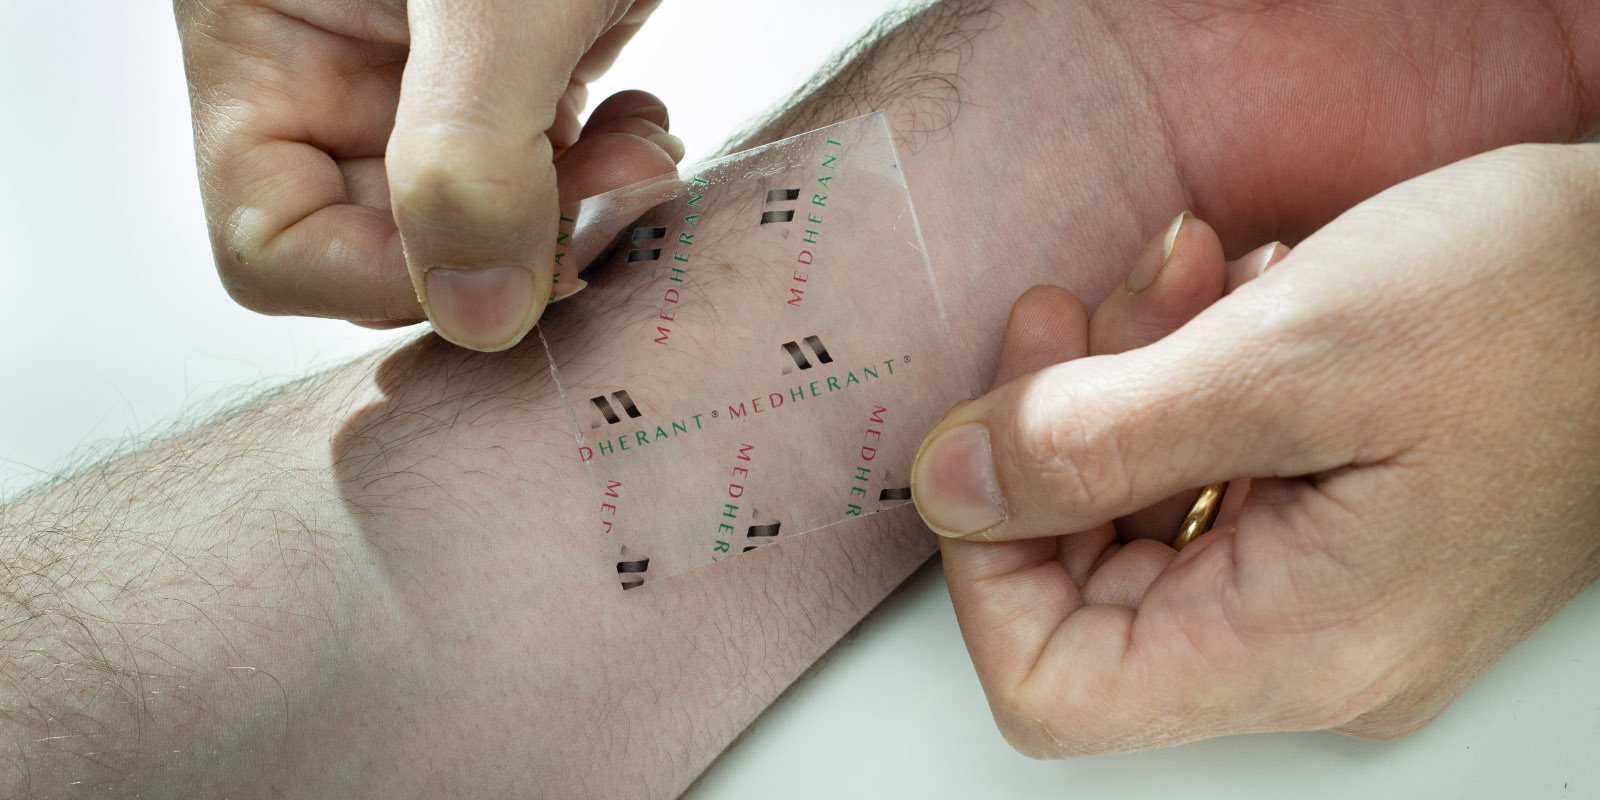 Ibuprofen Patch, a new idea that can reduce Pain for 12 Hours